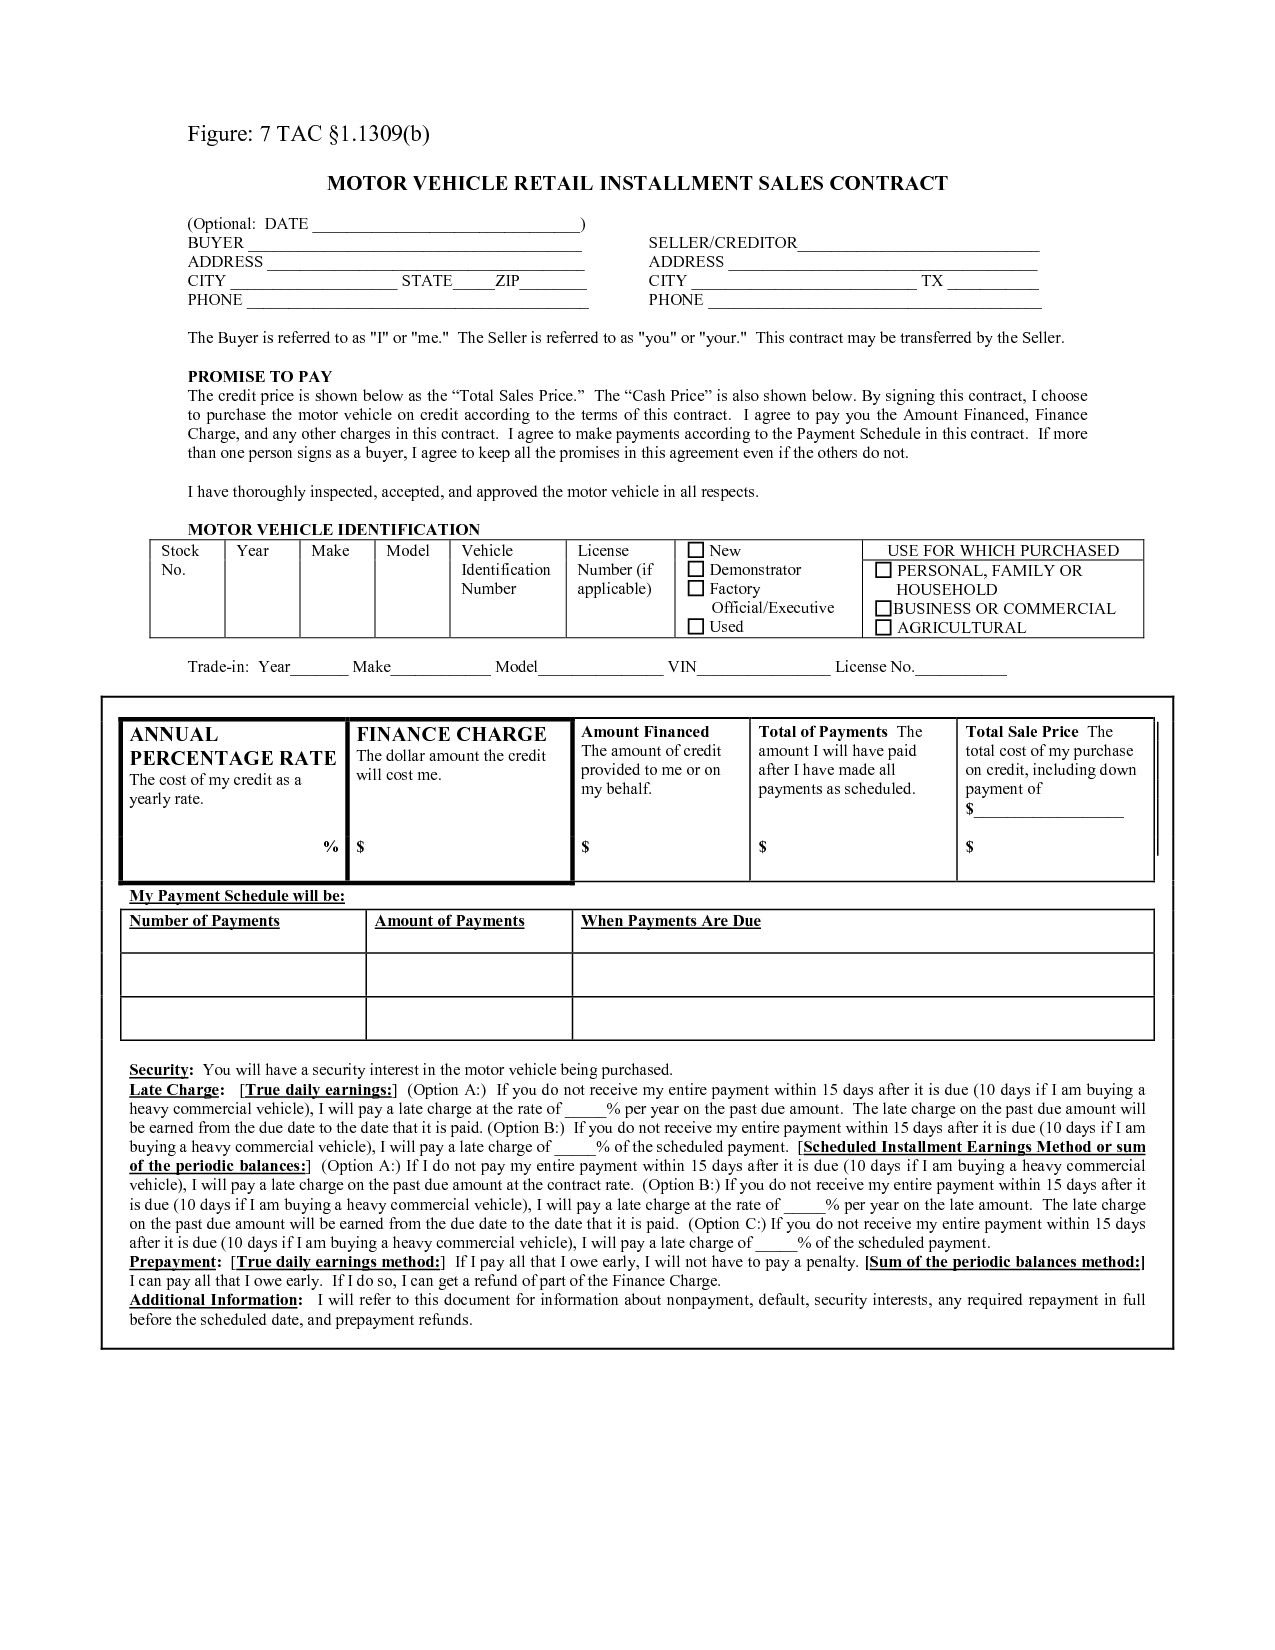 retail installment contract motor vehicle